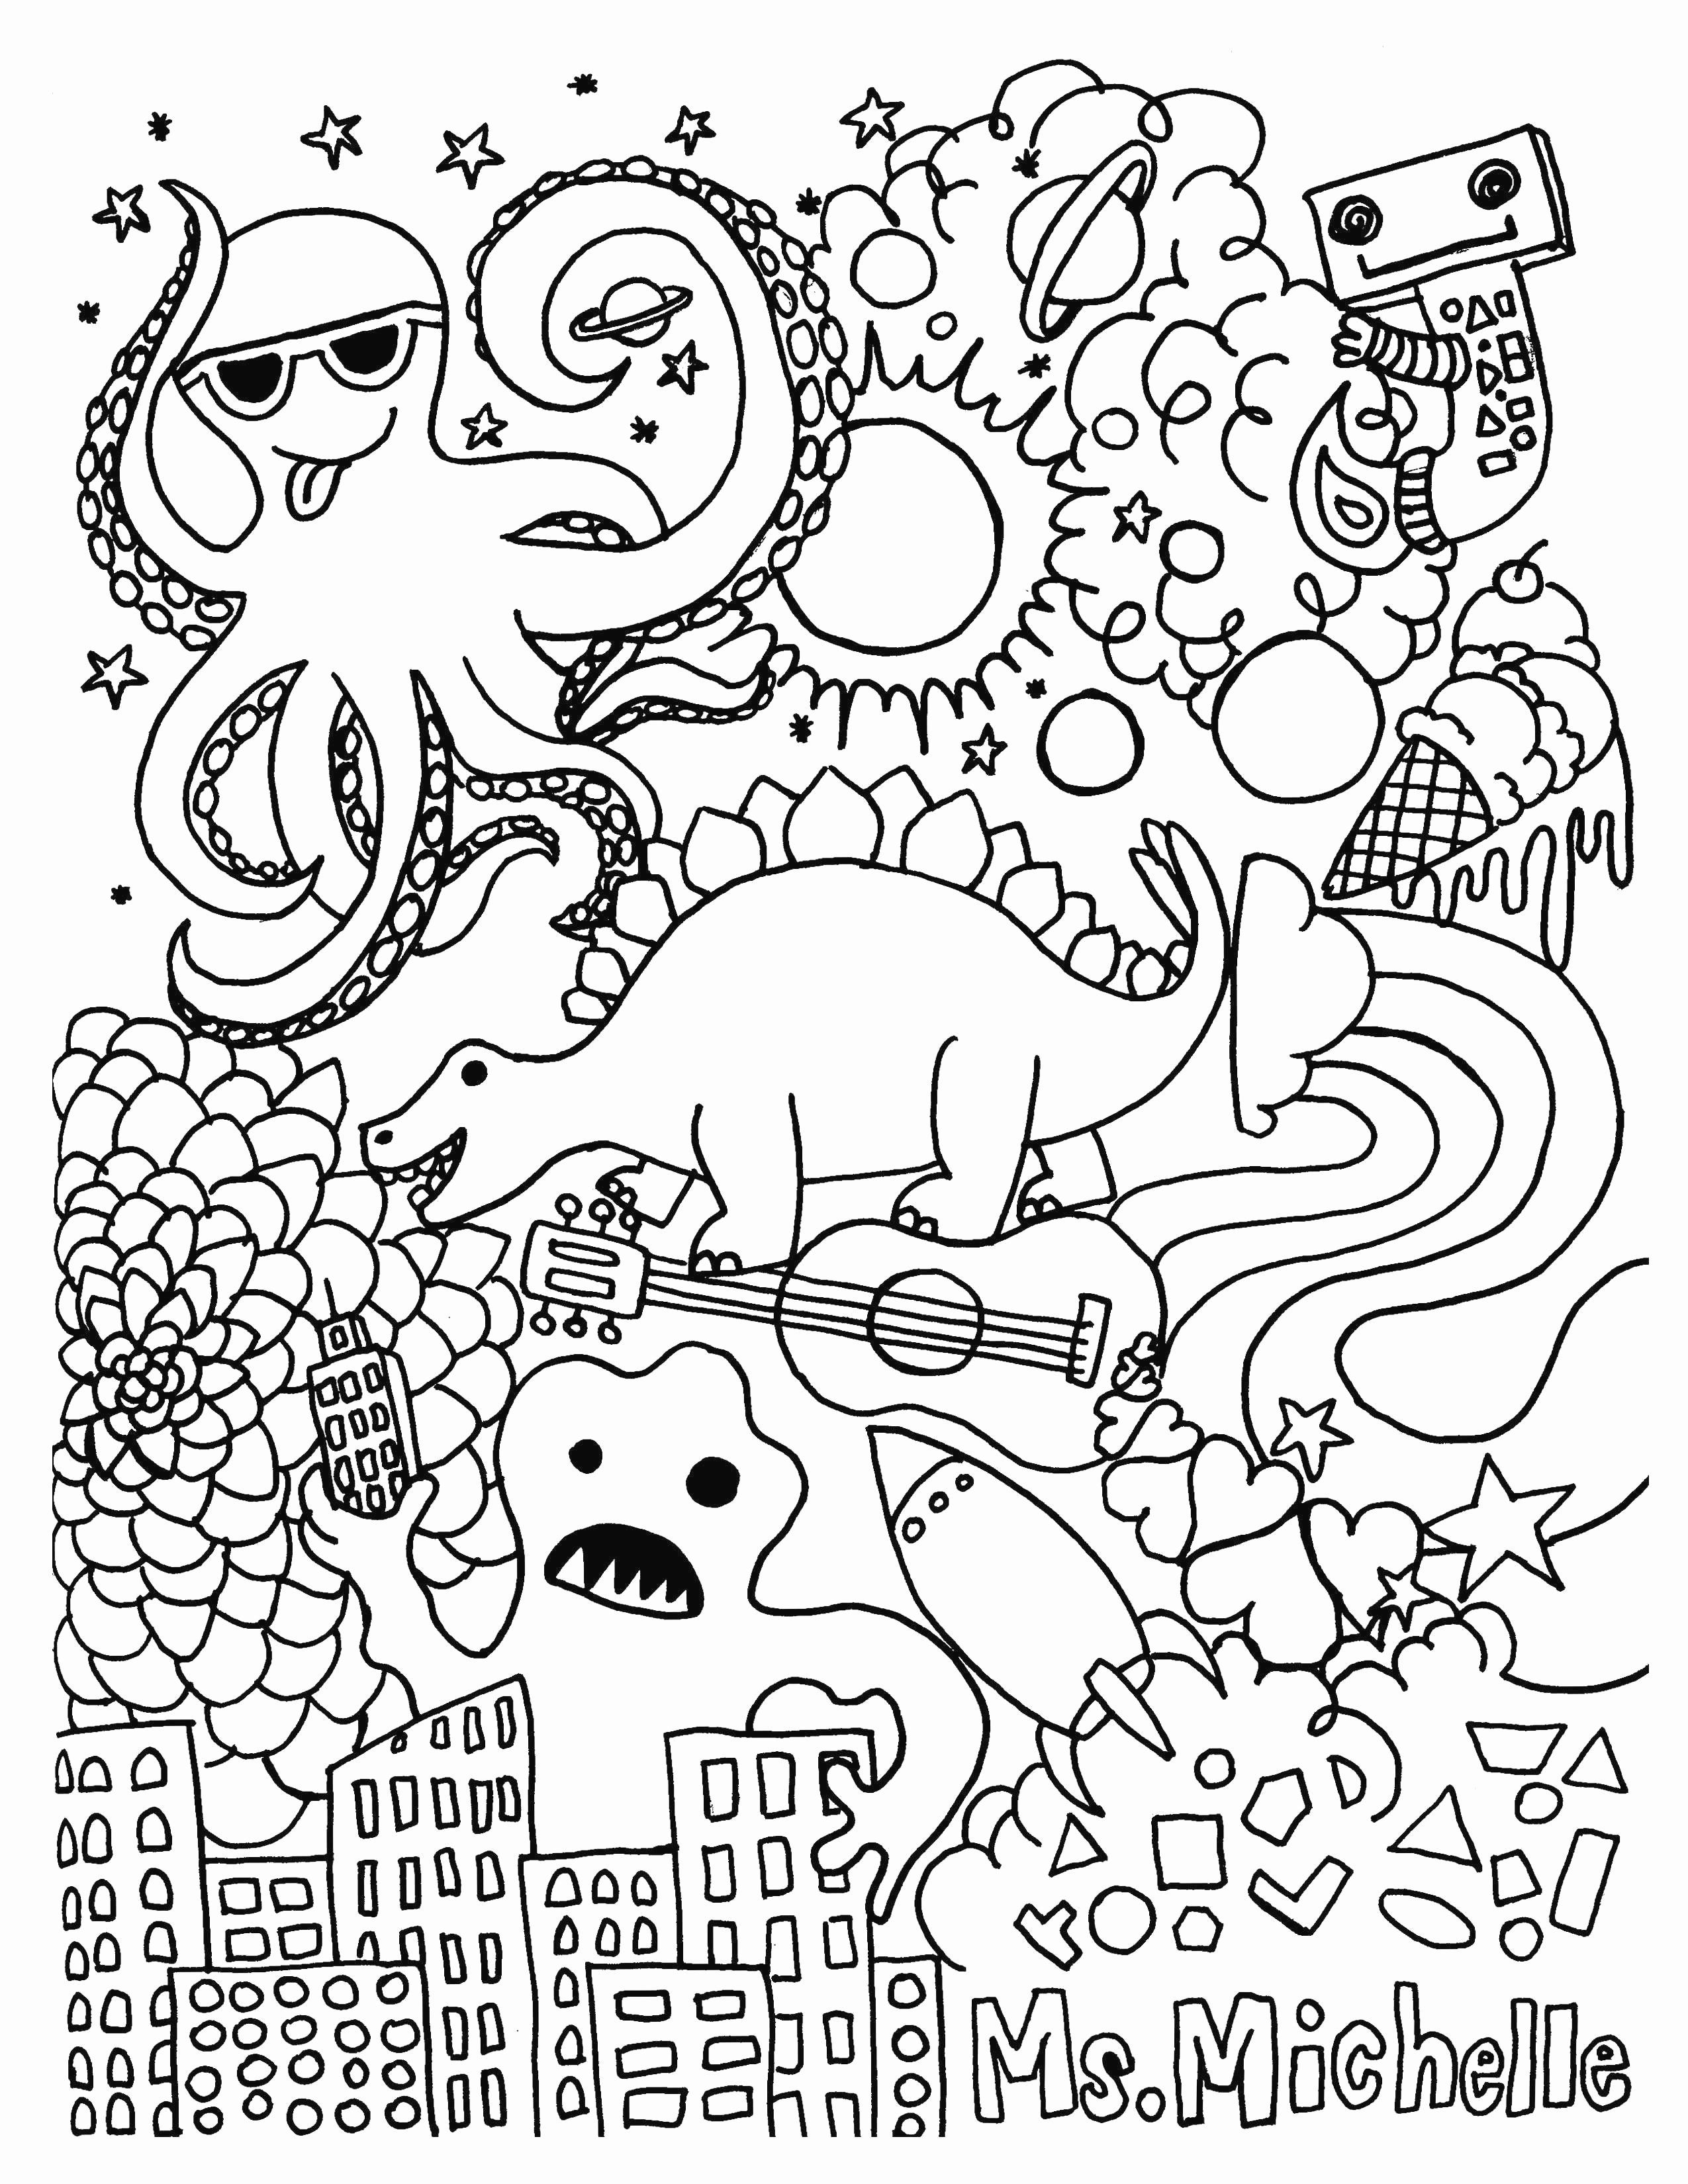 Coloring Cartoon Guitar Unique 95 Convert To Coloring Page Free Fall Coloring Pages Disney Princess Coloring Pages Princess Coloring Pages